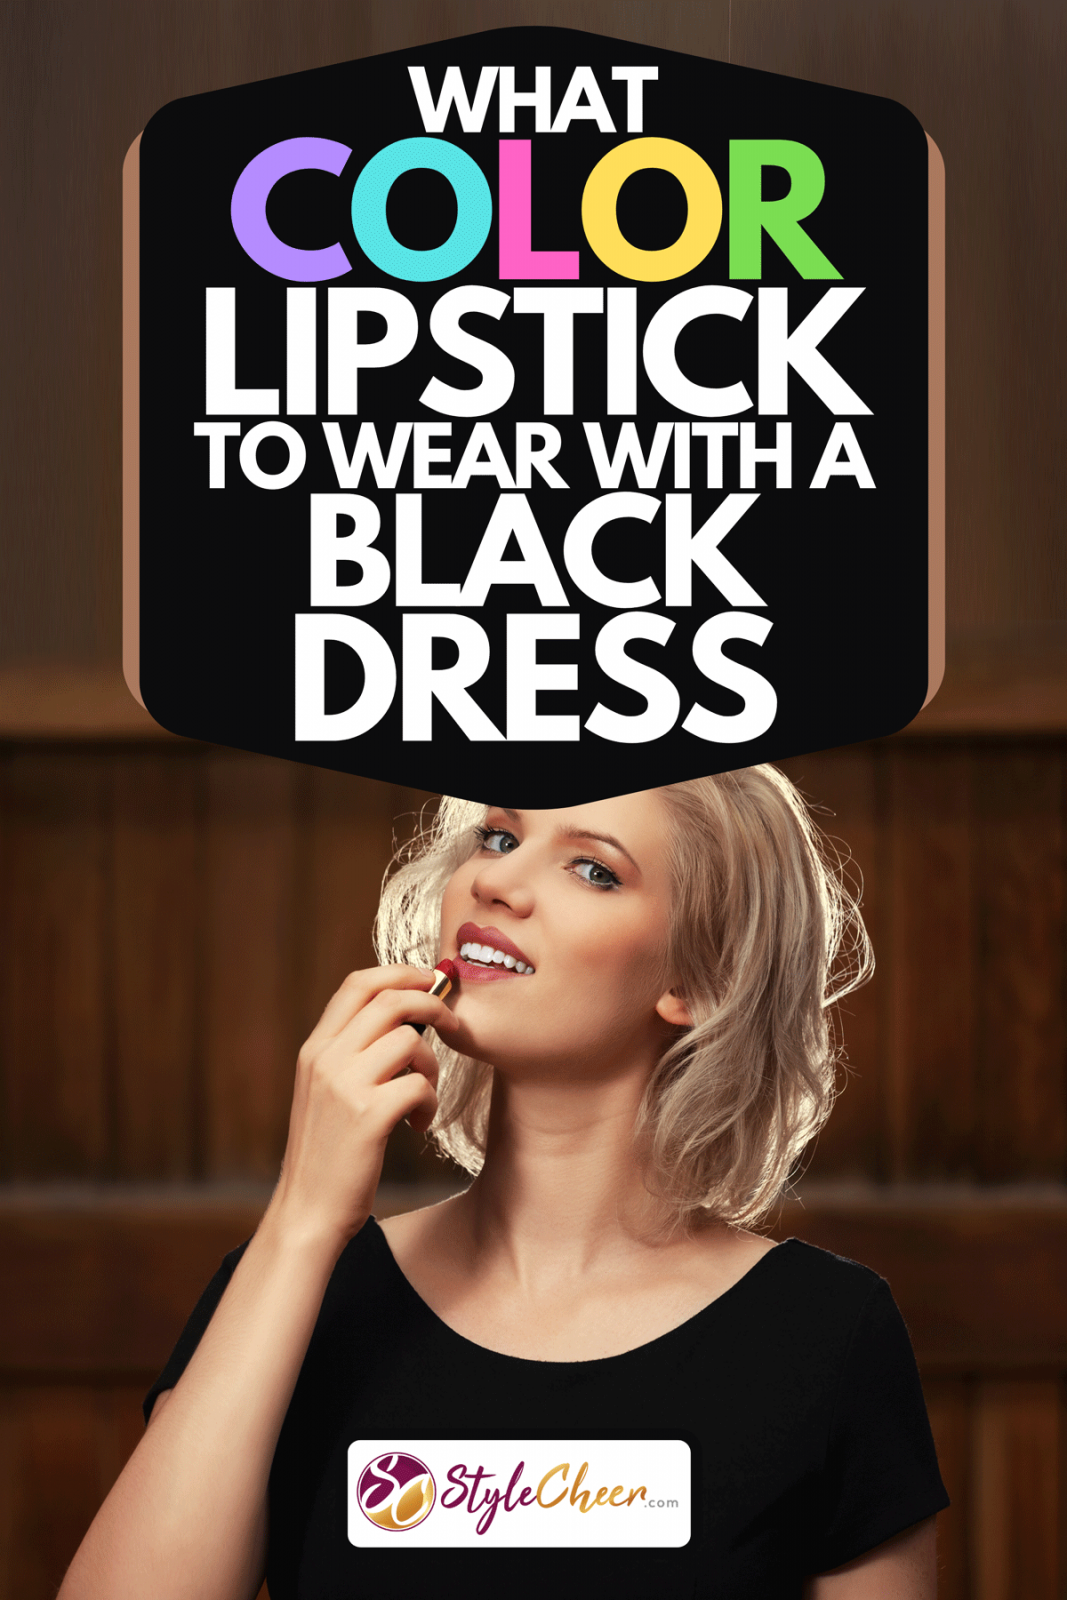 A young fashion blond woman in black dress putting lipstick on, What Color Lipstick to Wear With a Black Dress